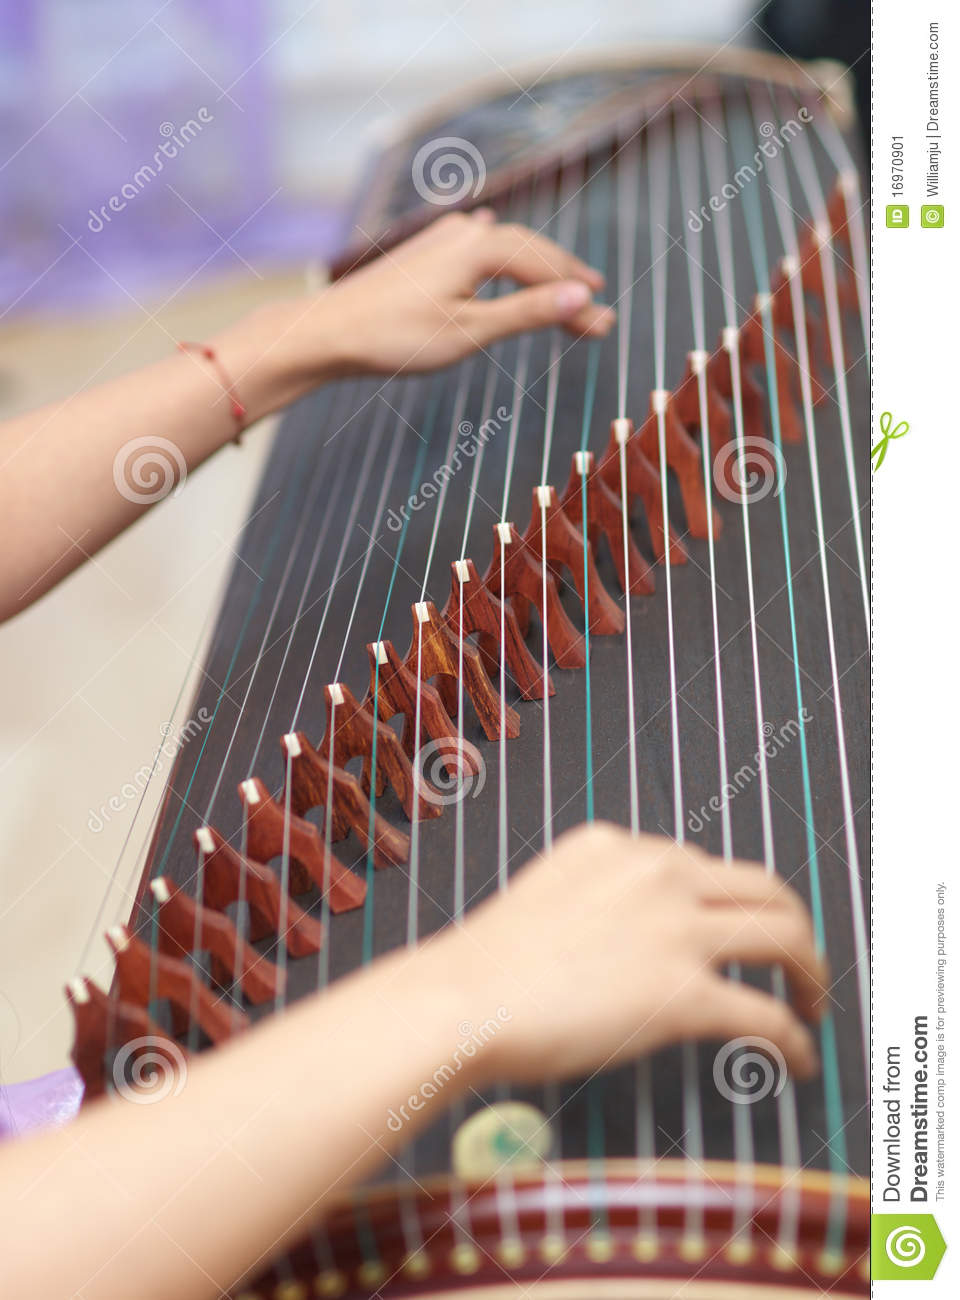 Traditional Musical Instruments: traditional musical